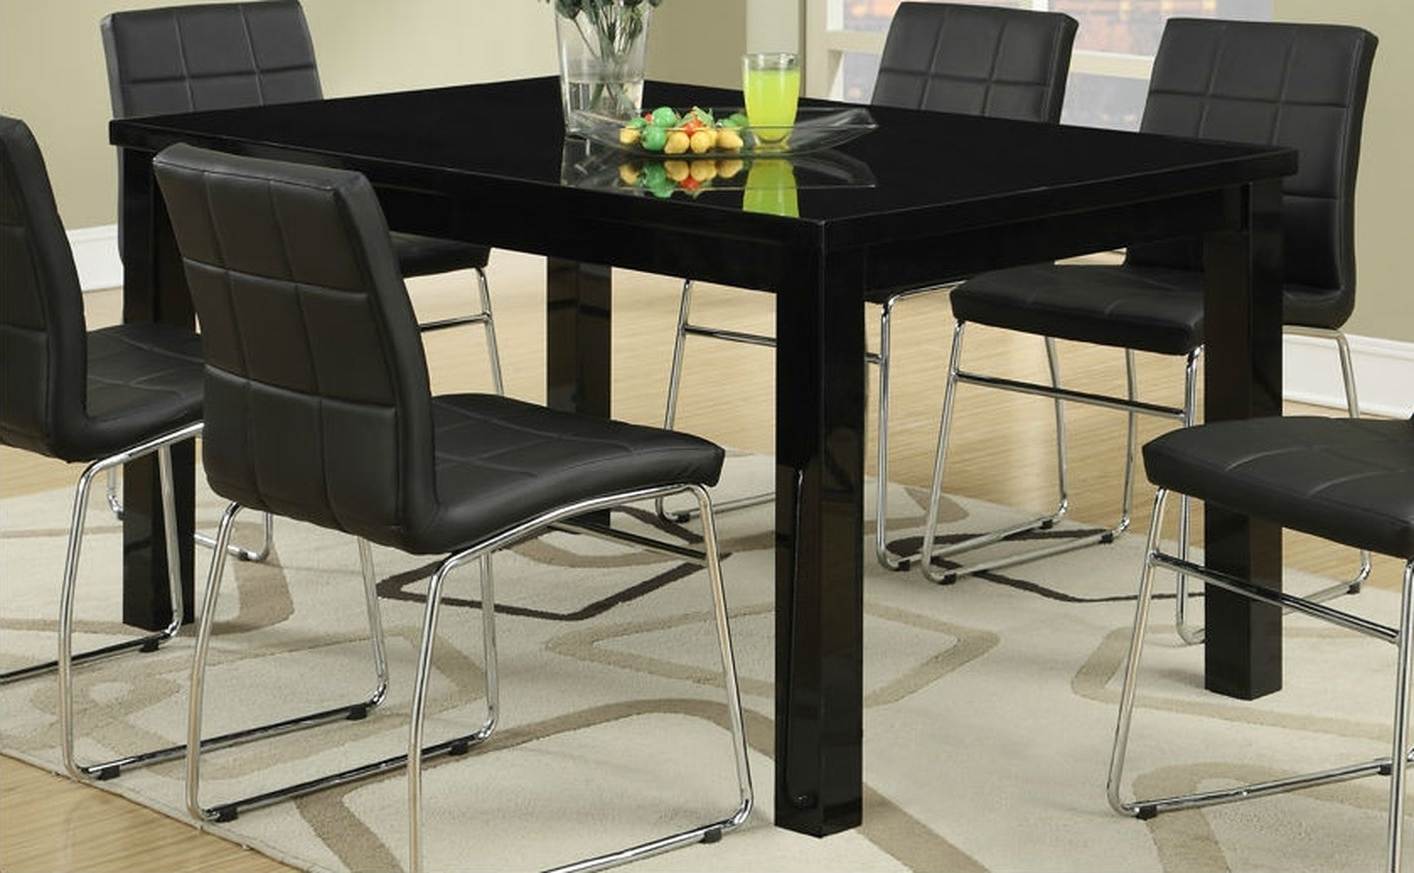 Preferred Black Wood Dining Table – Steal A Sofa Furniture Outlet Los Angeles Ca With Regard To Dark Wooden Dining Tables (View 13 of 25)